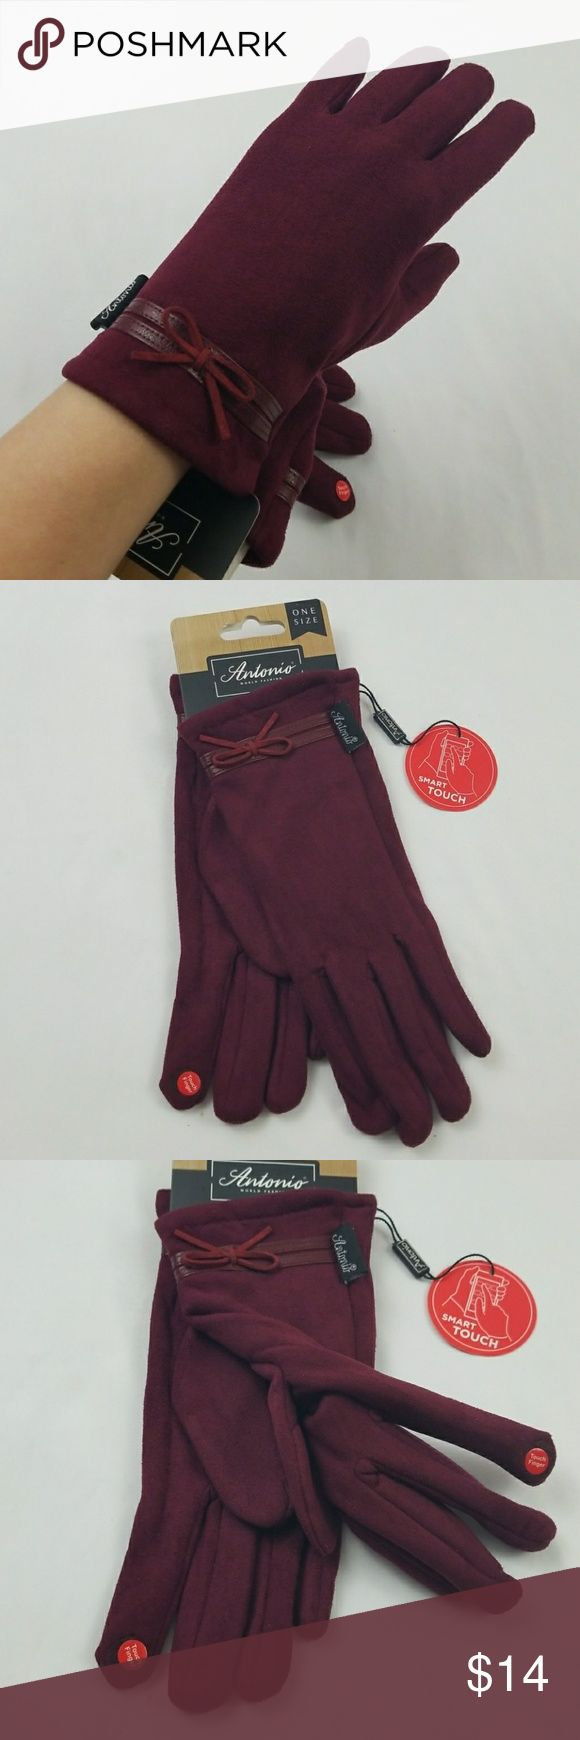 Fashion Lady Design Touchscreen Cold Weather Glove - Touch finger - you can use your smart phone when you wear your gloves, keep your hand warm, - Warm and Comfort -  very soft, smooth, thin and breathable material.  -  Looks like a soft suede,100% polyester, -  Inside soft lining, -  Material is flexible, fit the hand well and do not drop. Antonio Accessories Gloves & Mittens